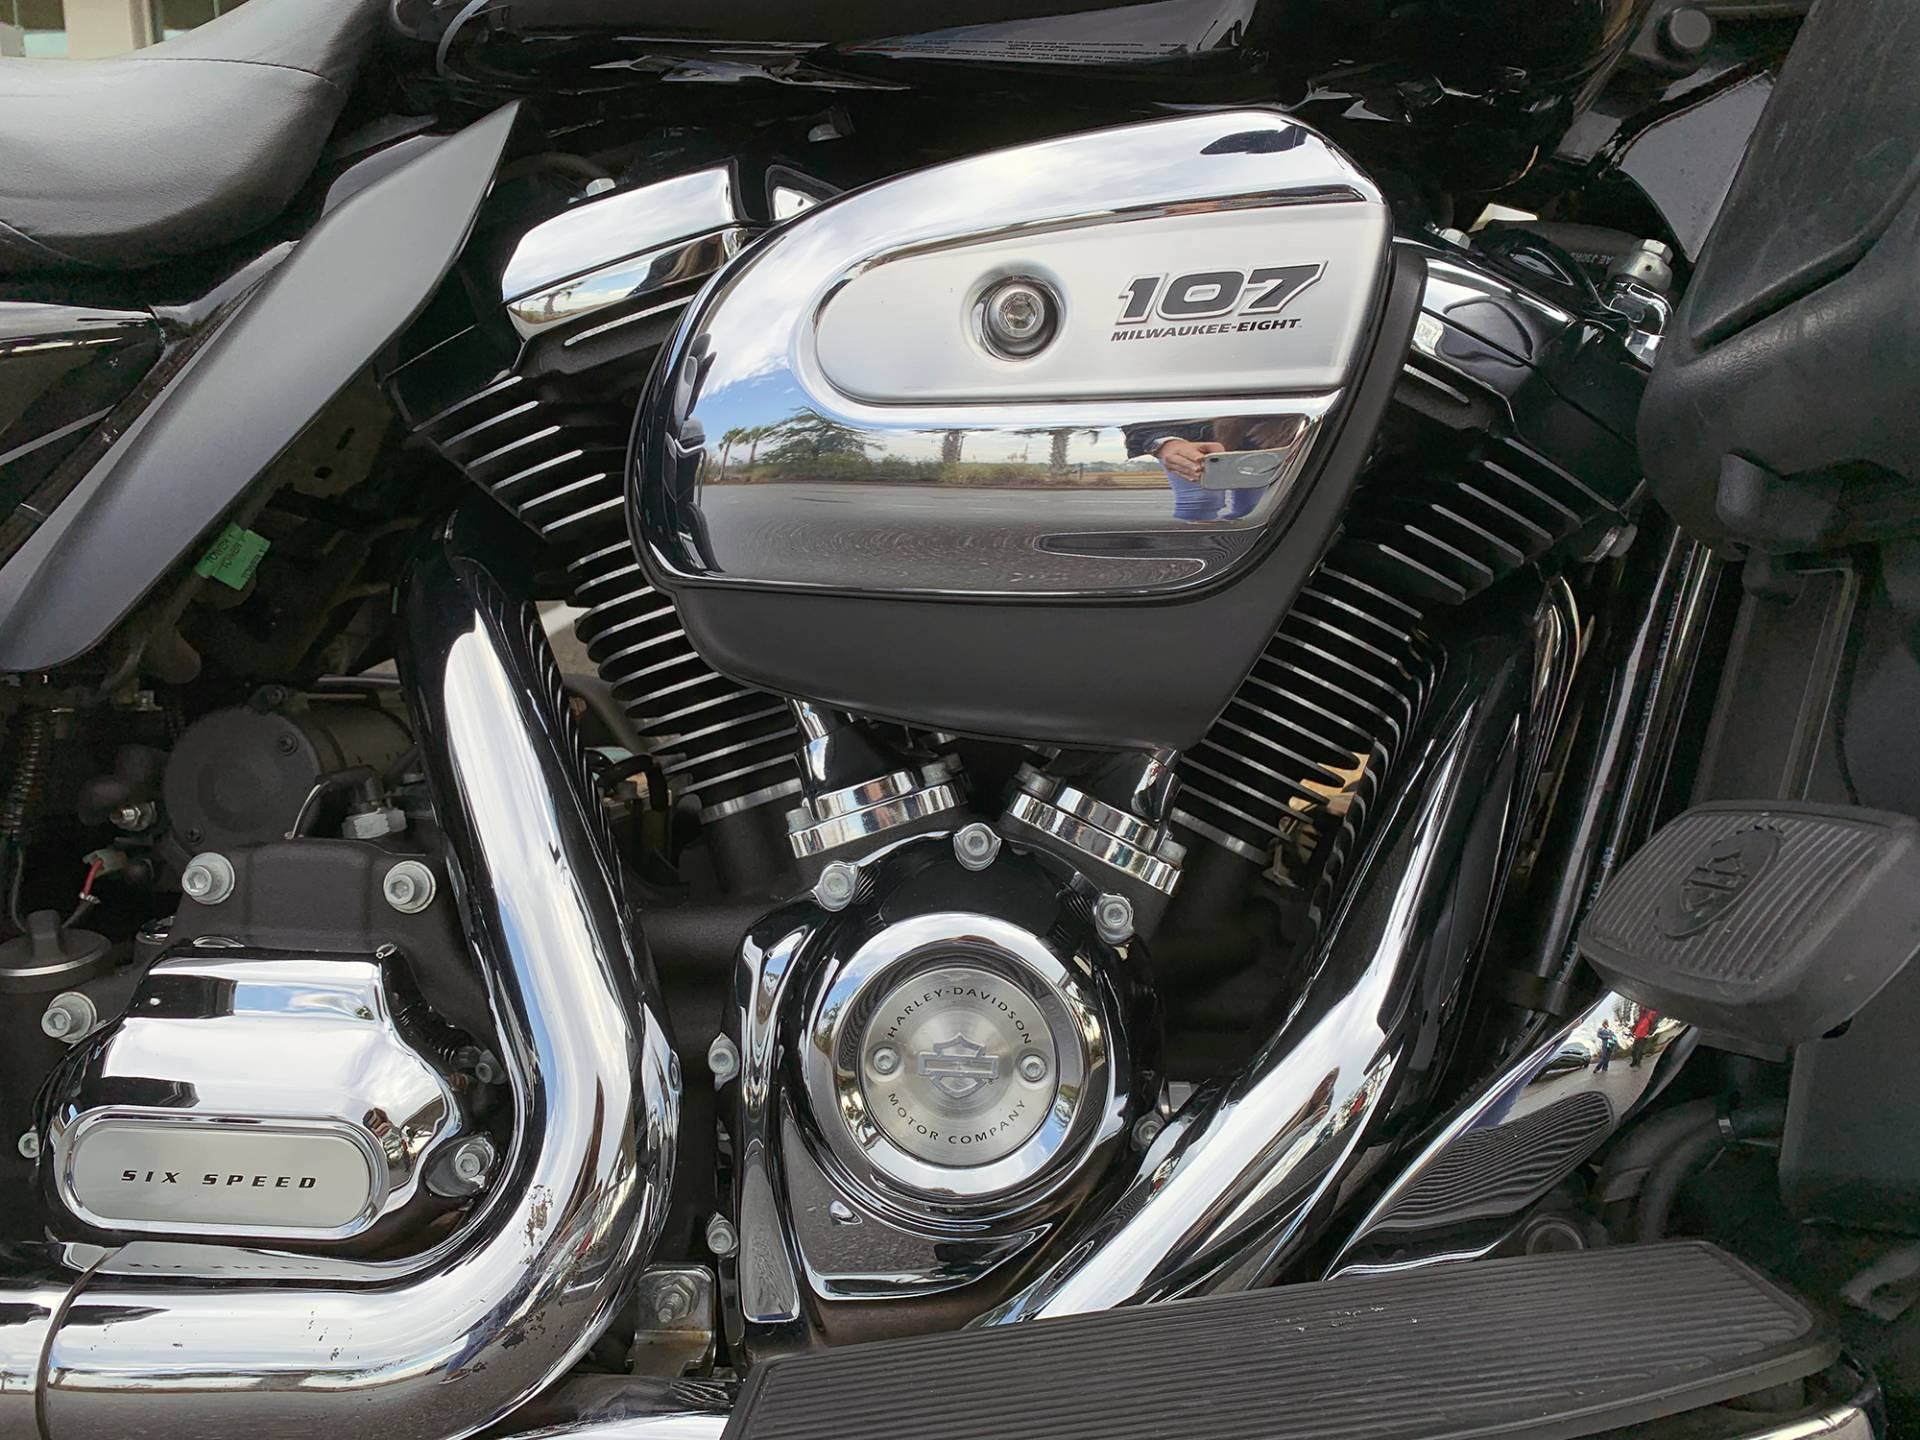 2017 Harley-Davidson Electra Glide® Ultra Limited® in Jacksonville, North Carolina - Photo 9